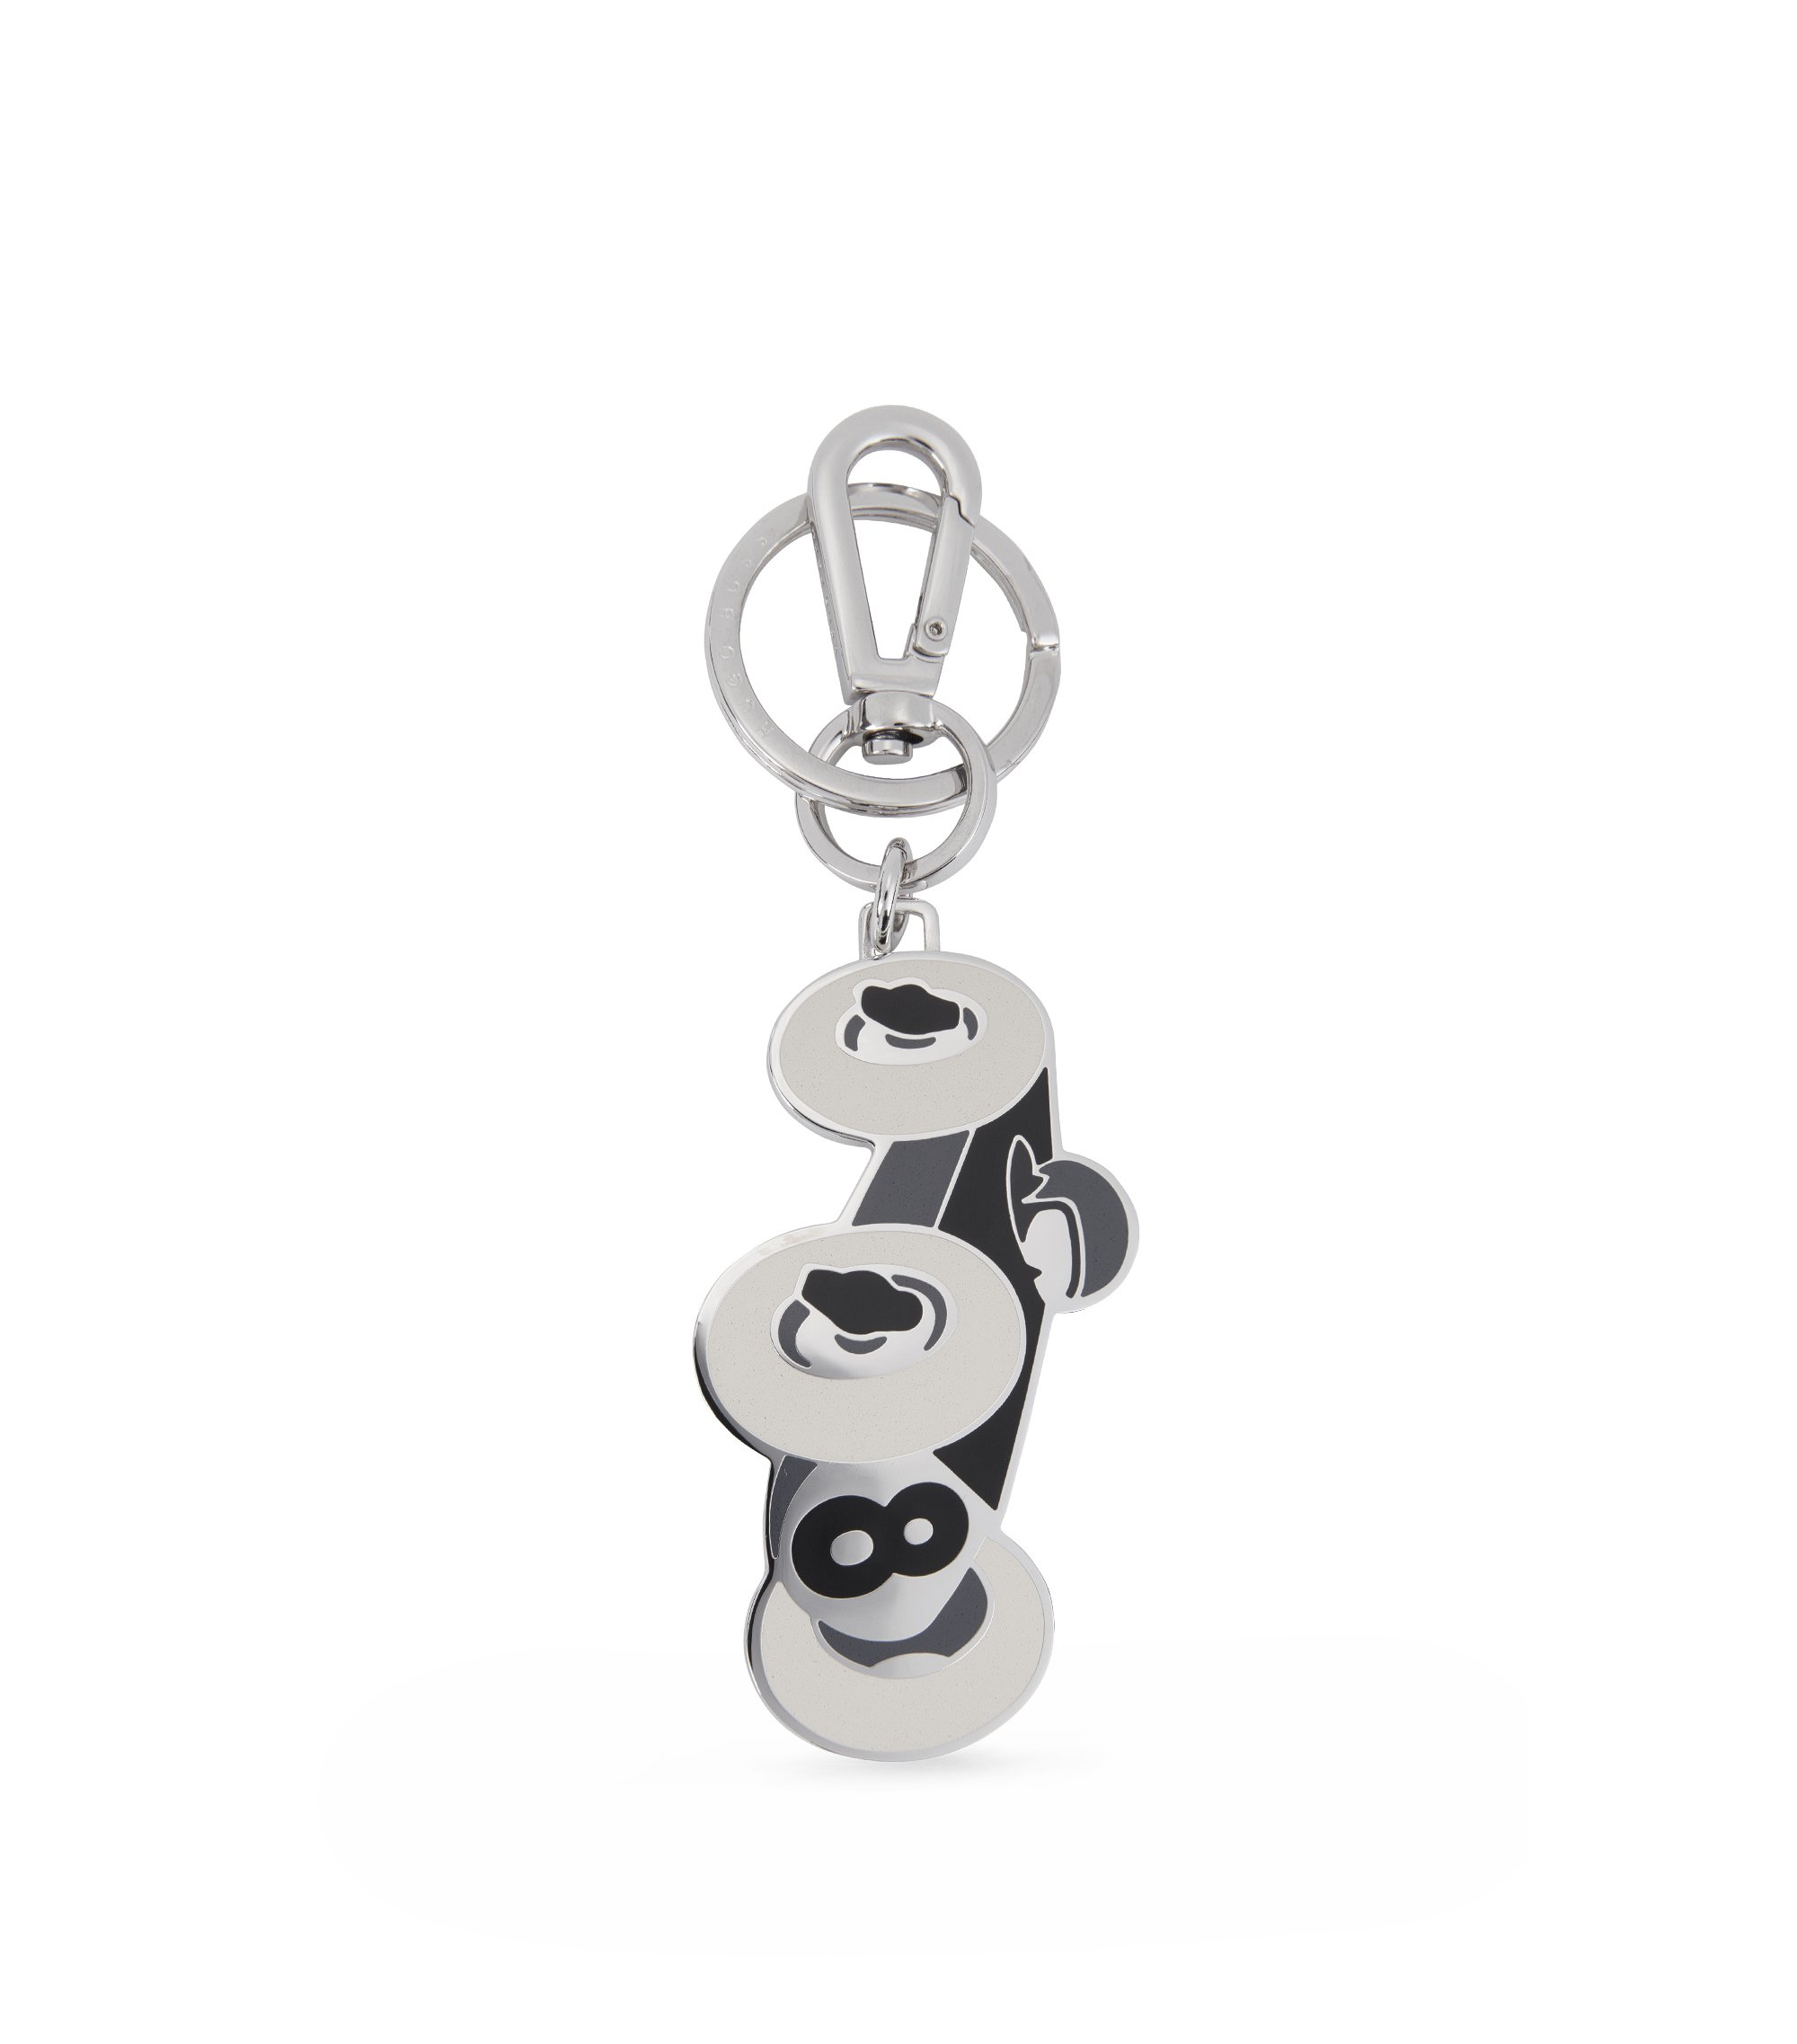 Stainless-steel key holder with coloured enamel, Black